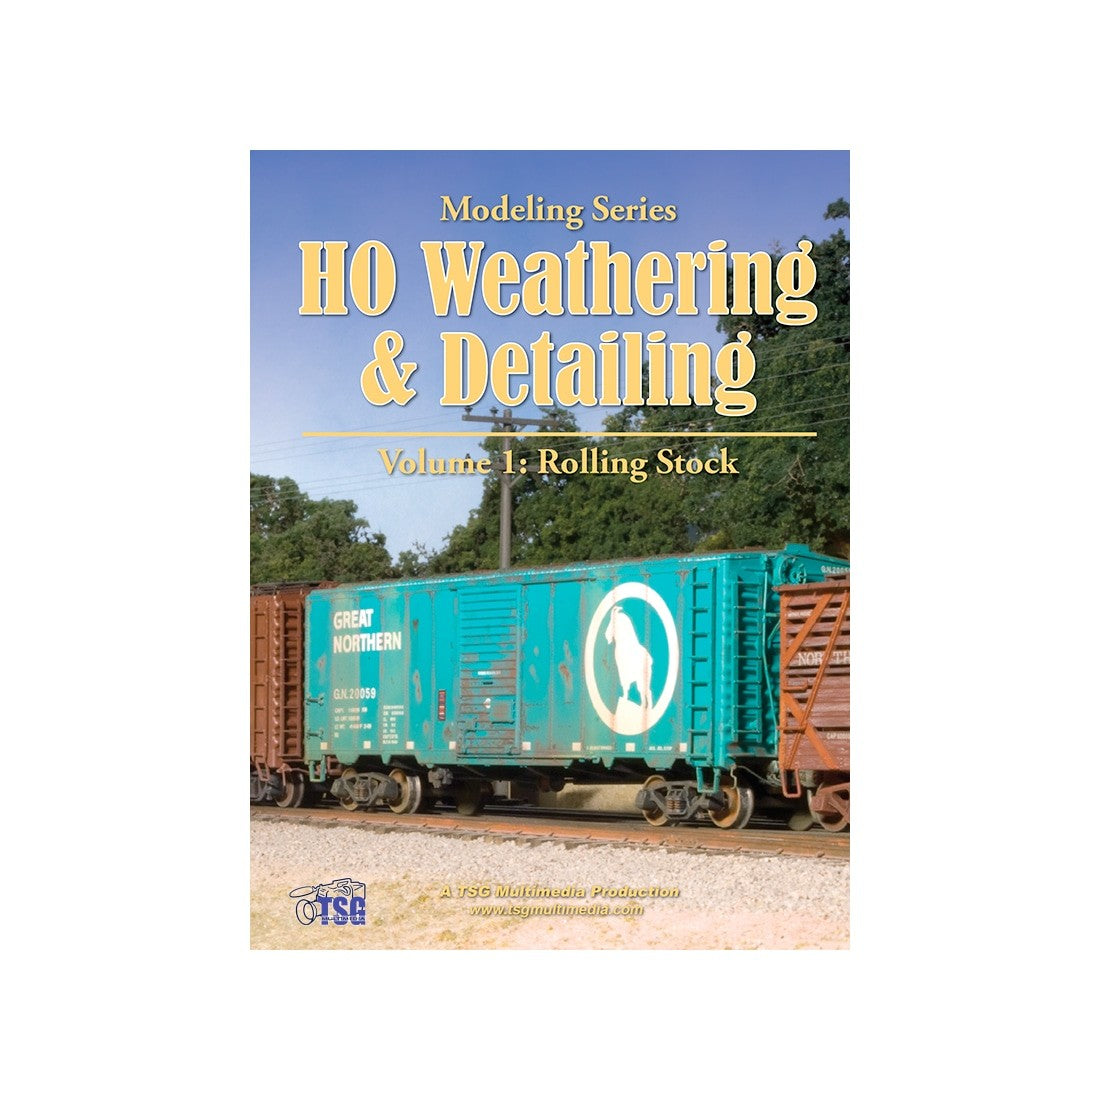 DVD: Modeling Series - HO Scale Weathering & Detailing - Volume 1